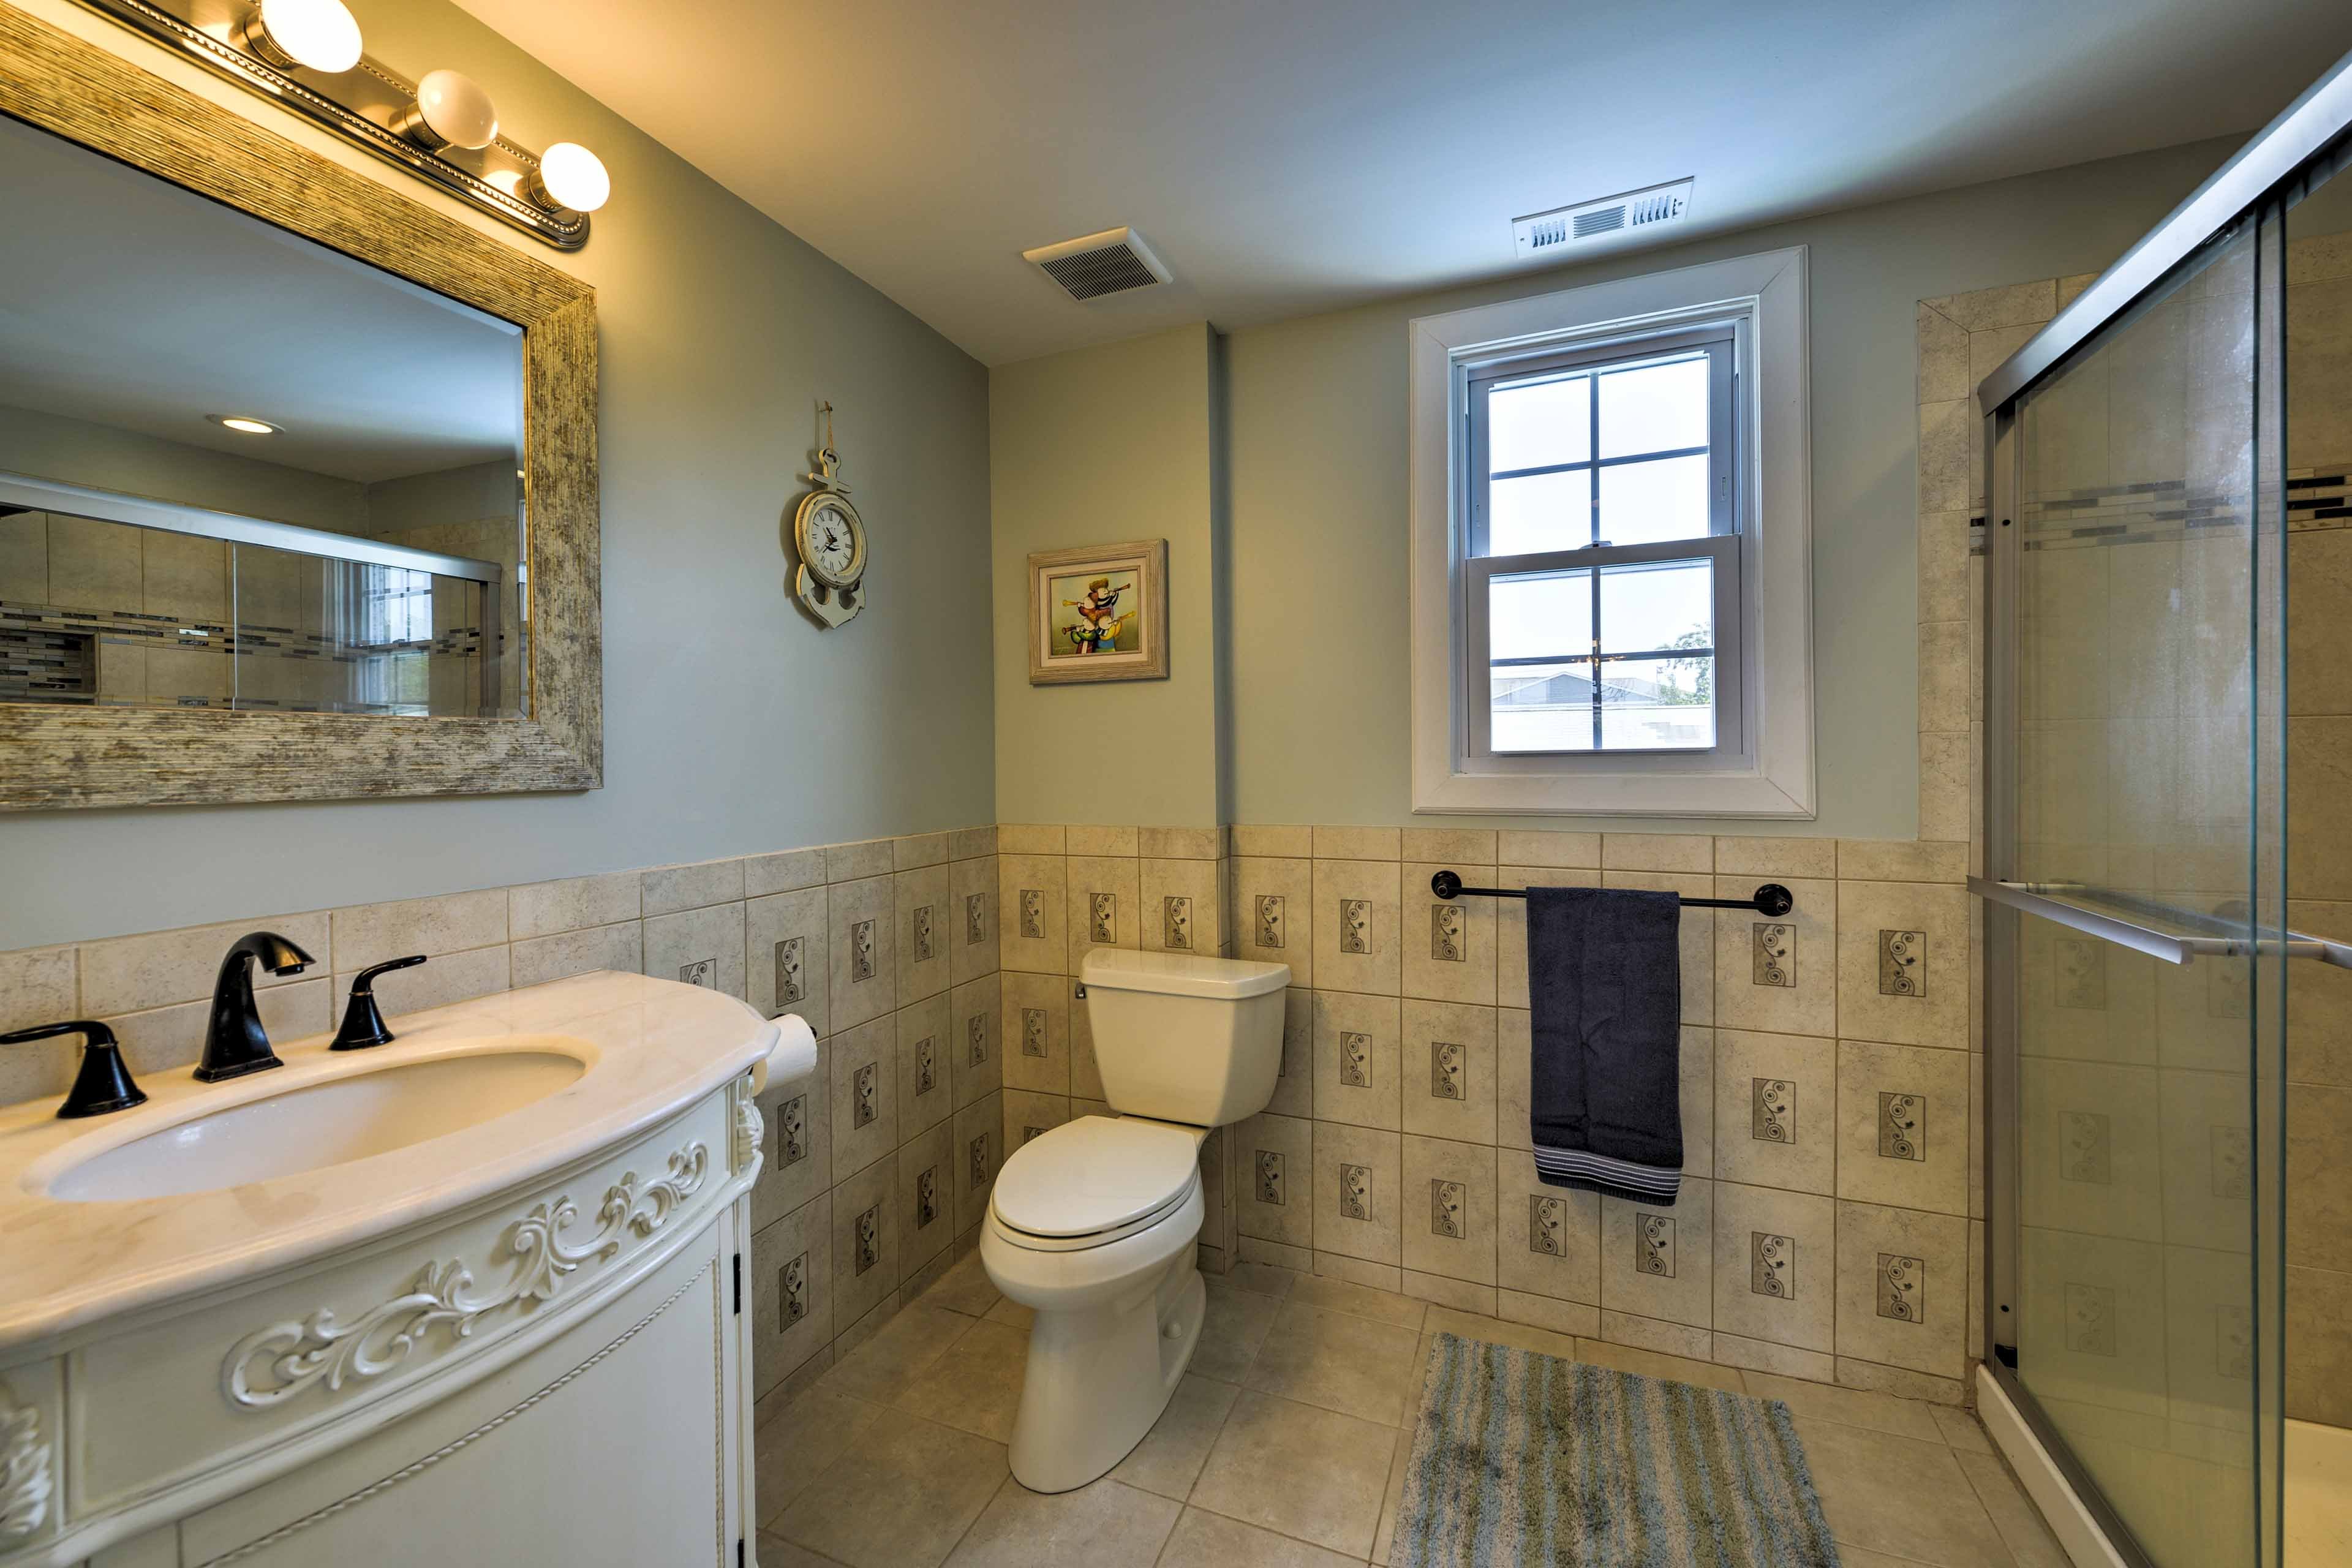 2 full bathrooms offer privacy for all guests.